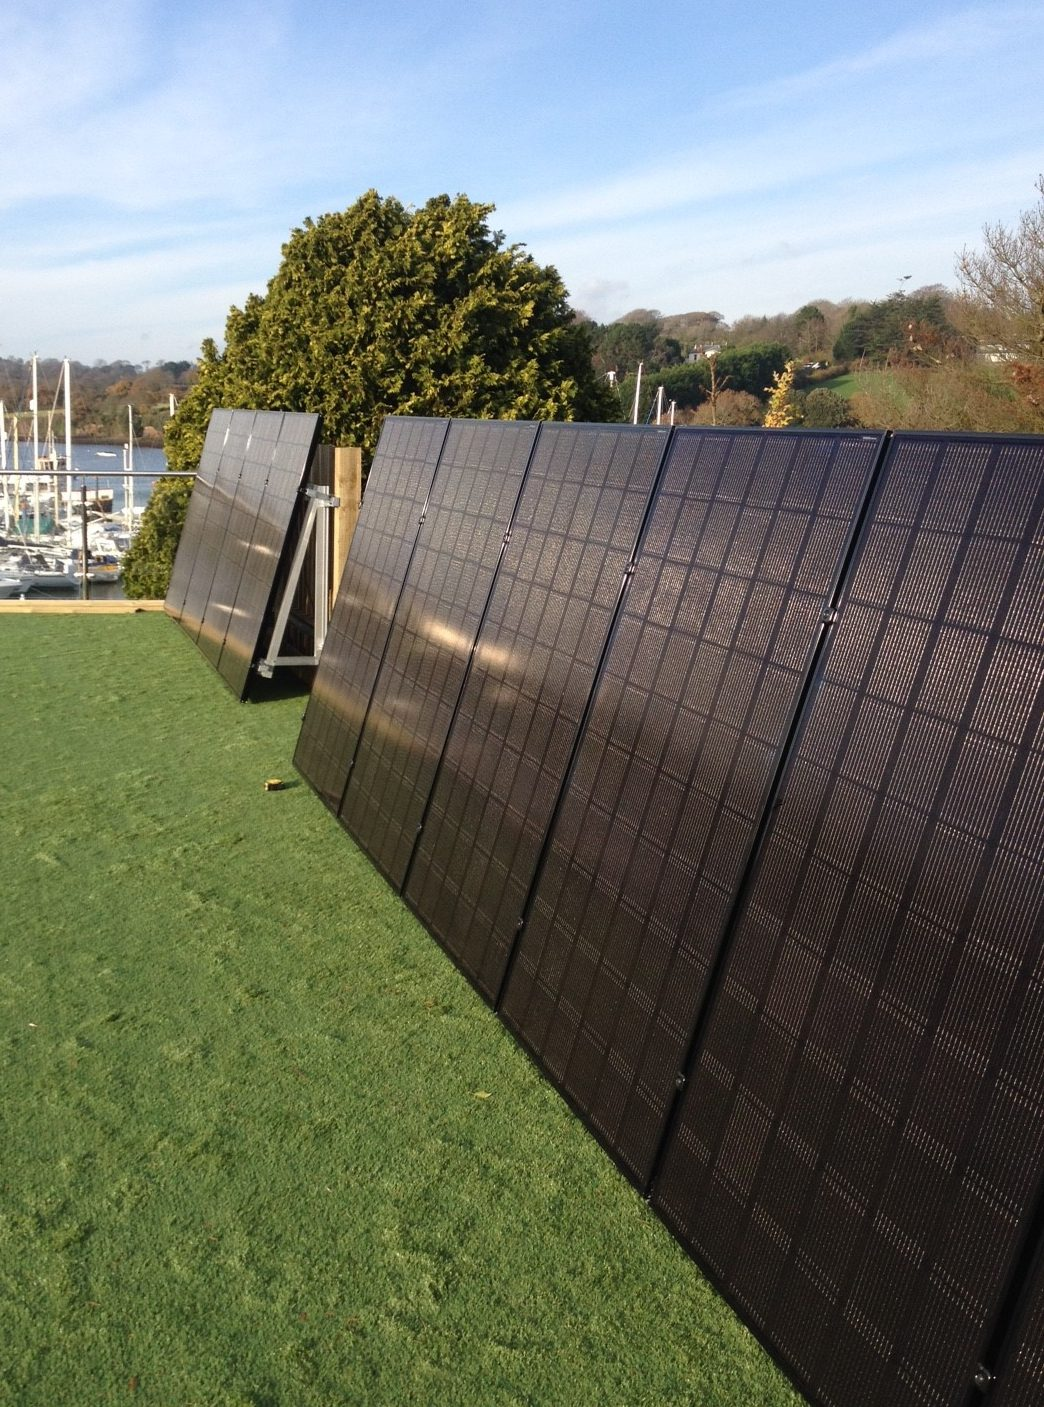 A 3.3kW LG solar PV array, consisted of 11 panels/